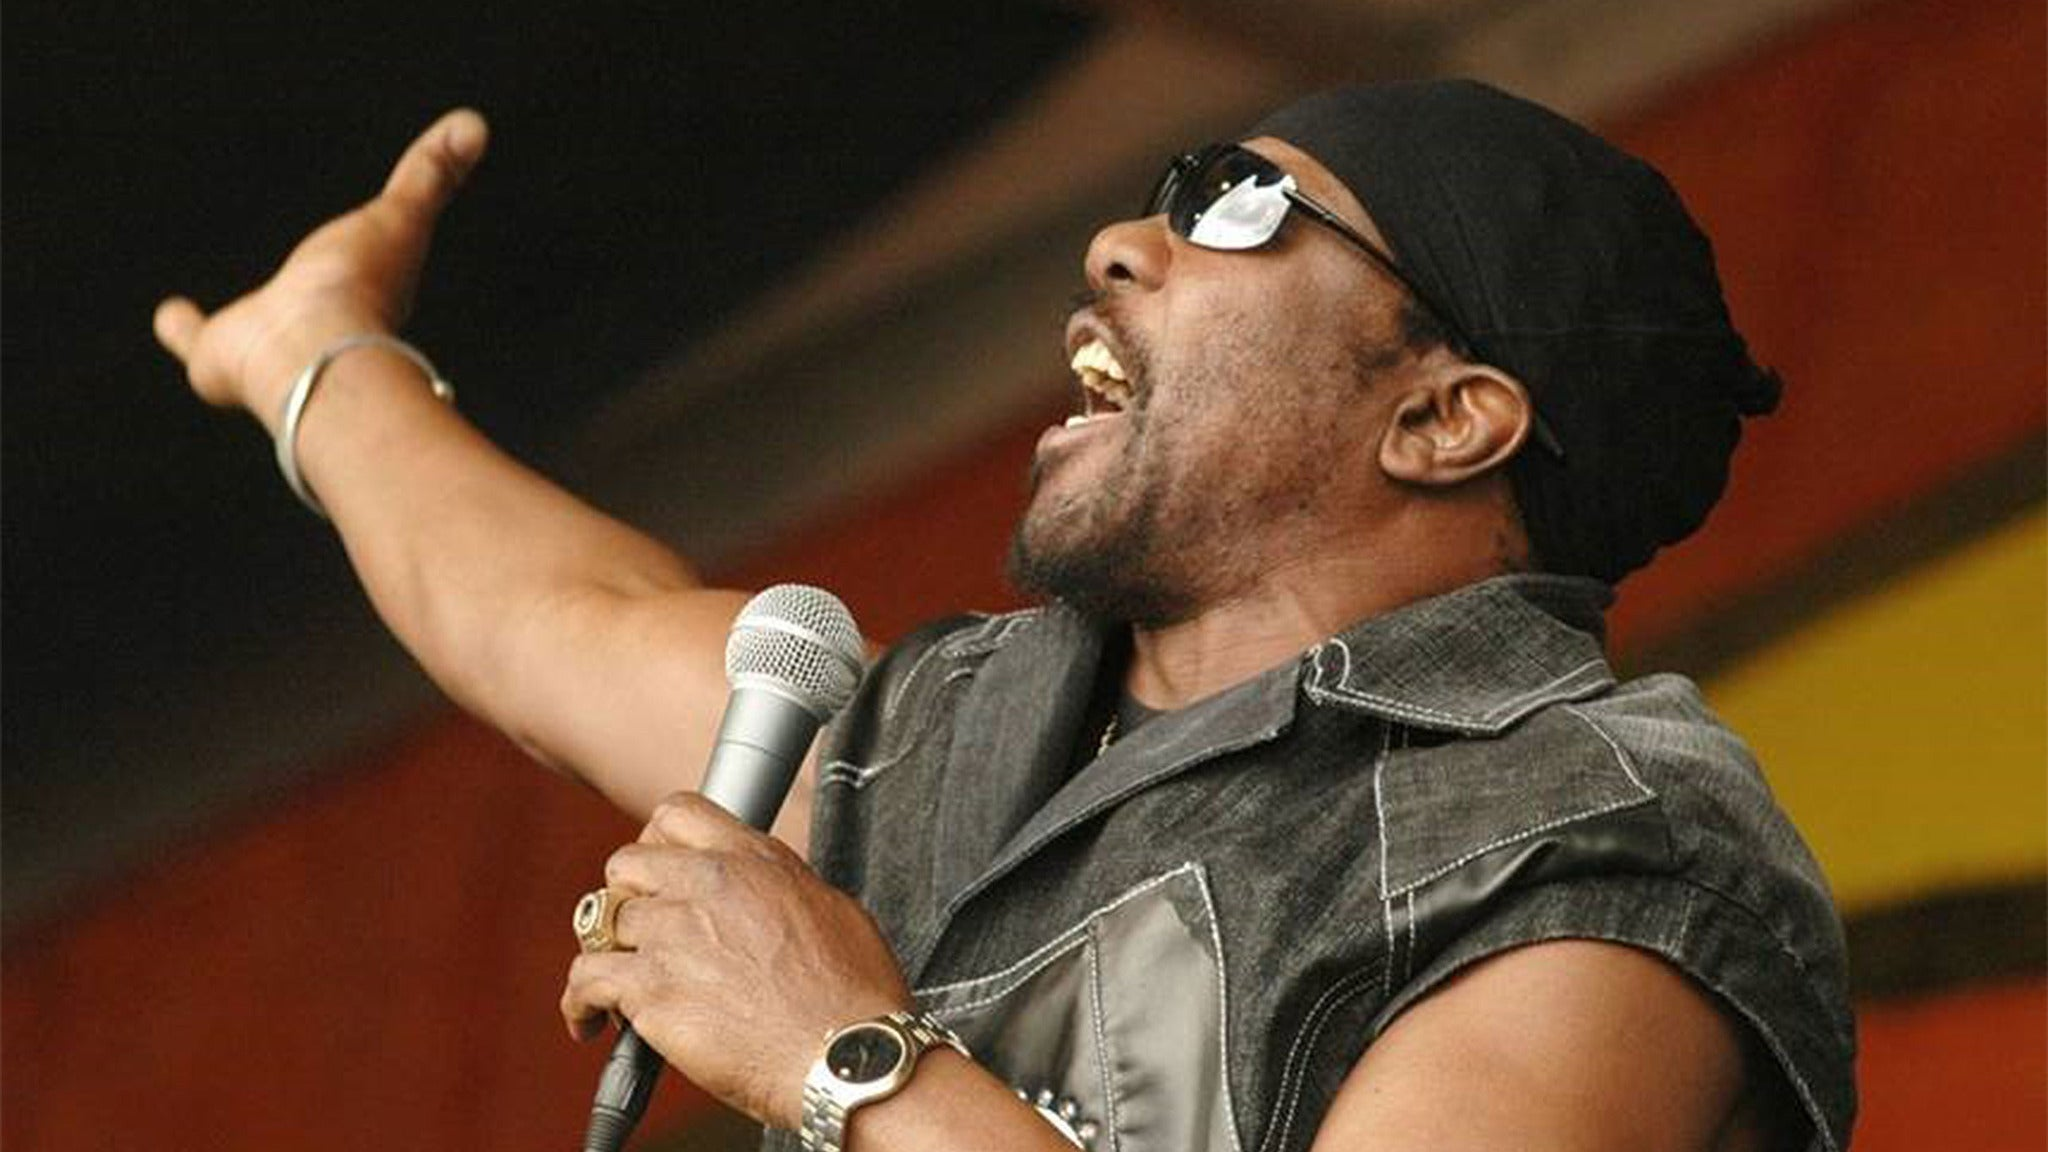 TOOTS AND THE MAYTALS - LIVE IN CONCERT at Aura